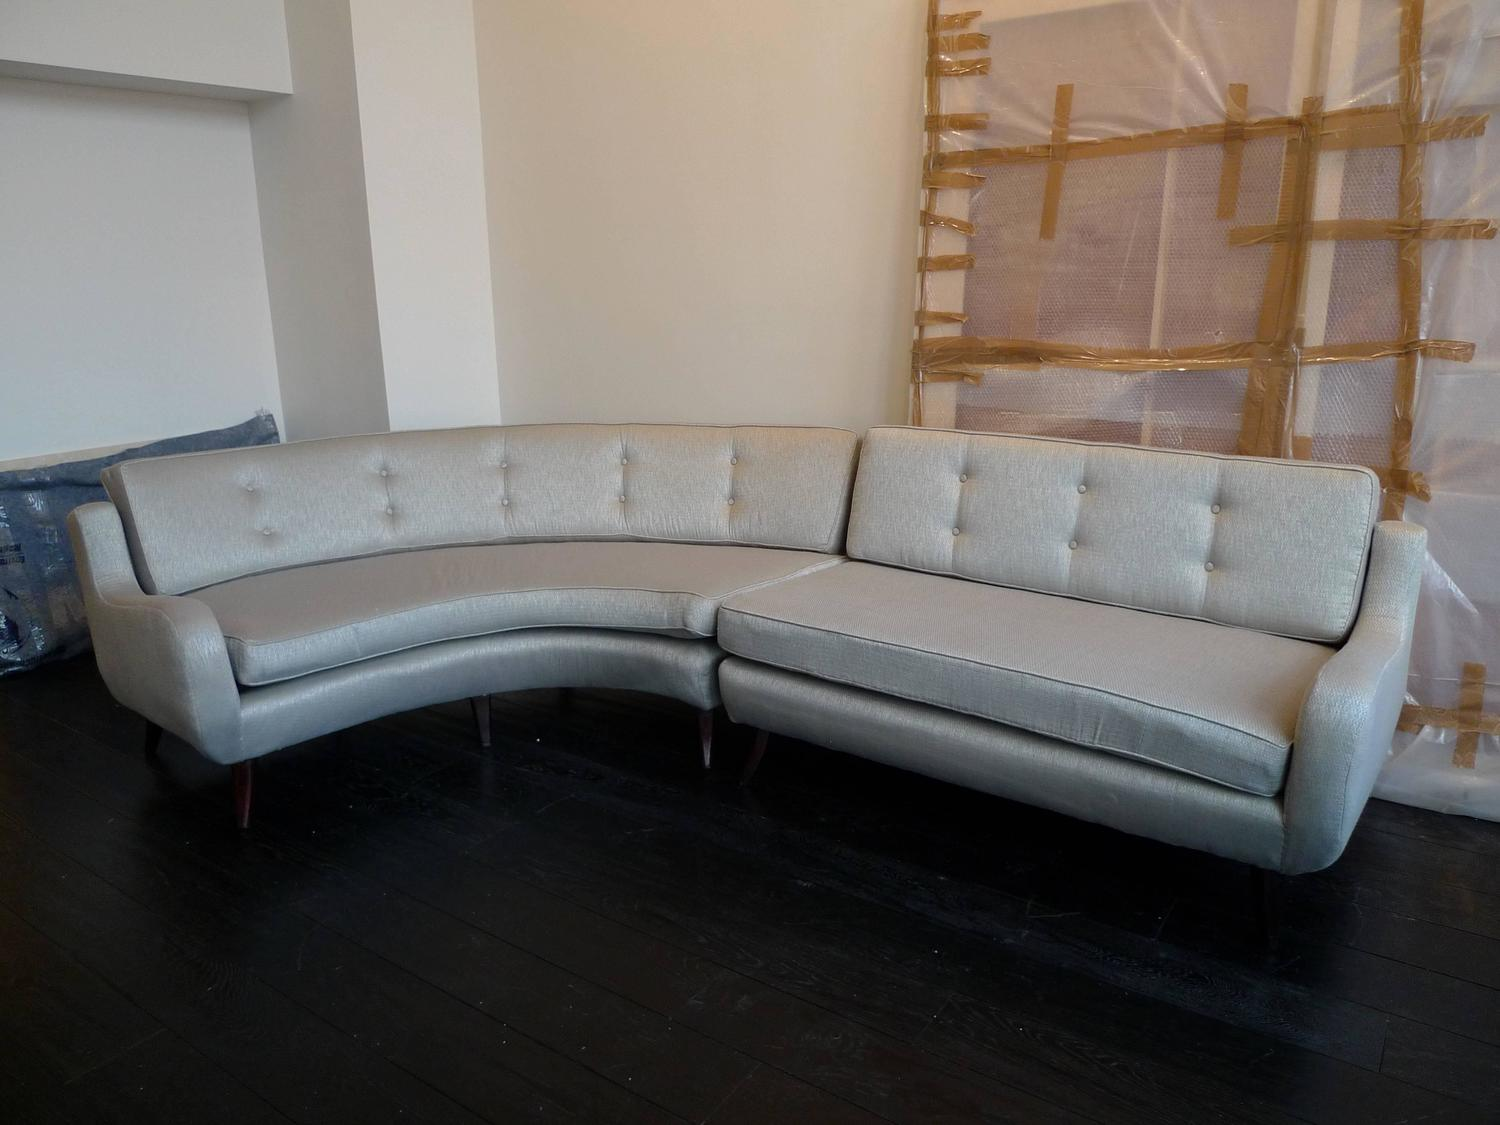 Rare two piece sectional sofa by ernst schwadron for sale for 2 pieces sectional sofa